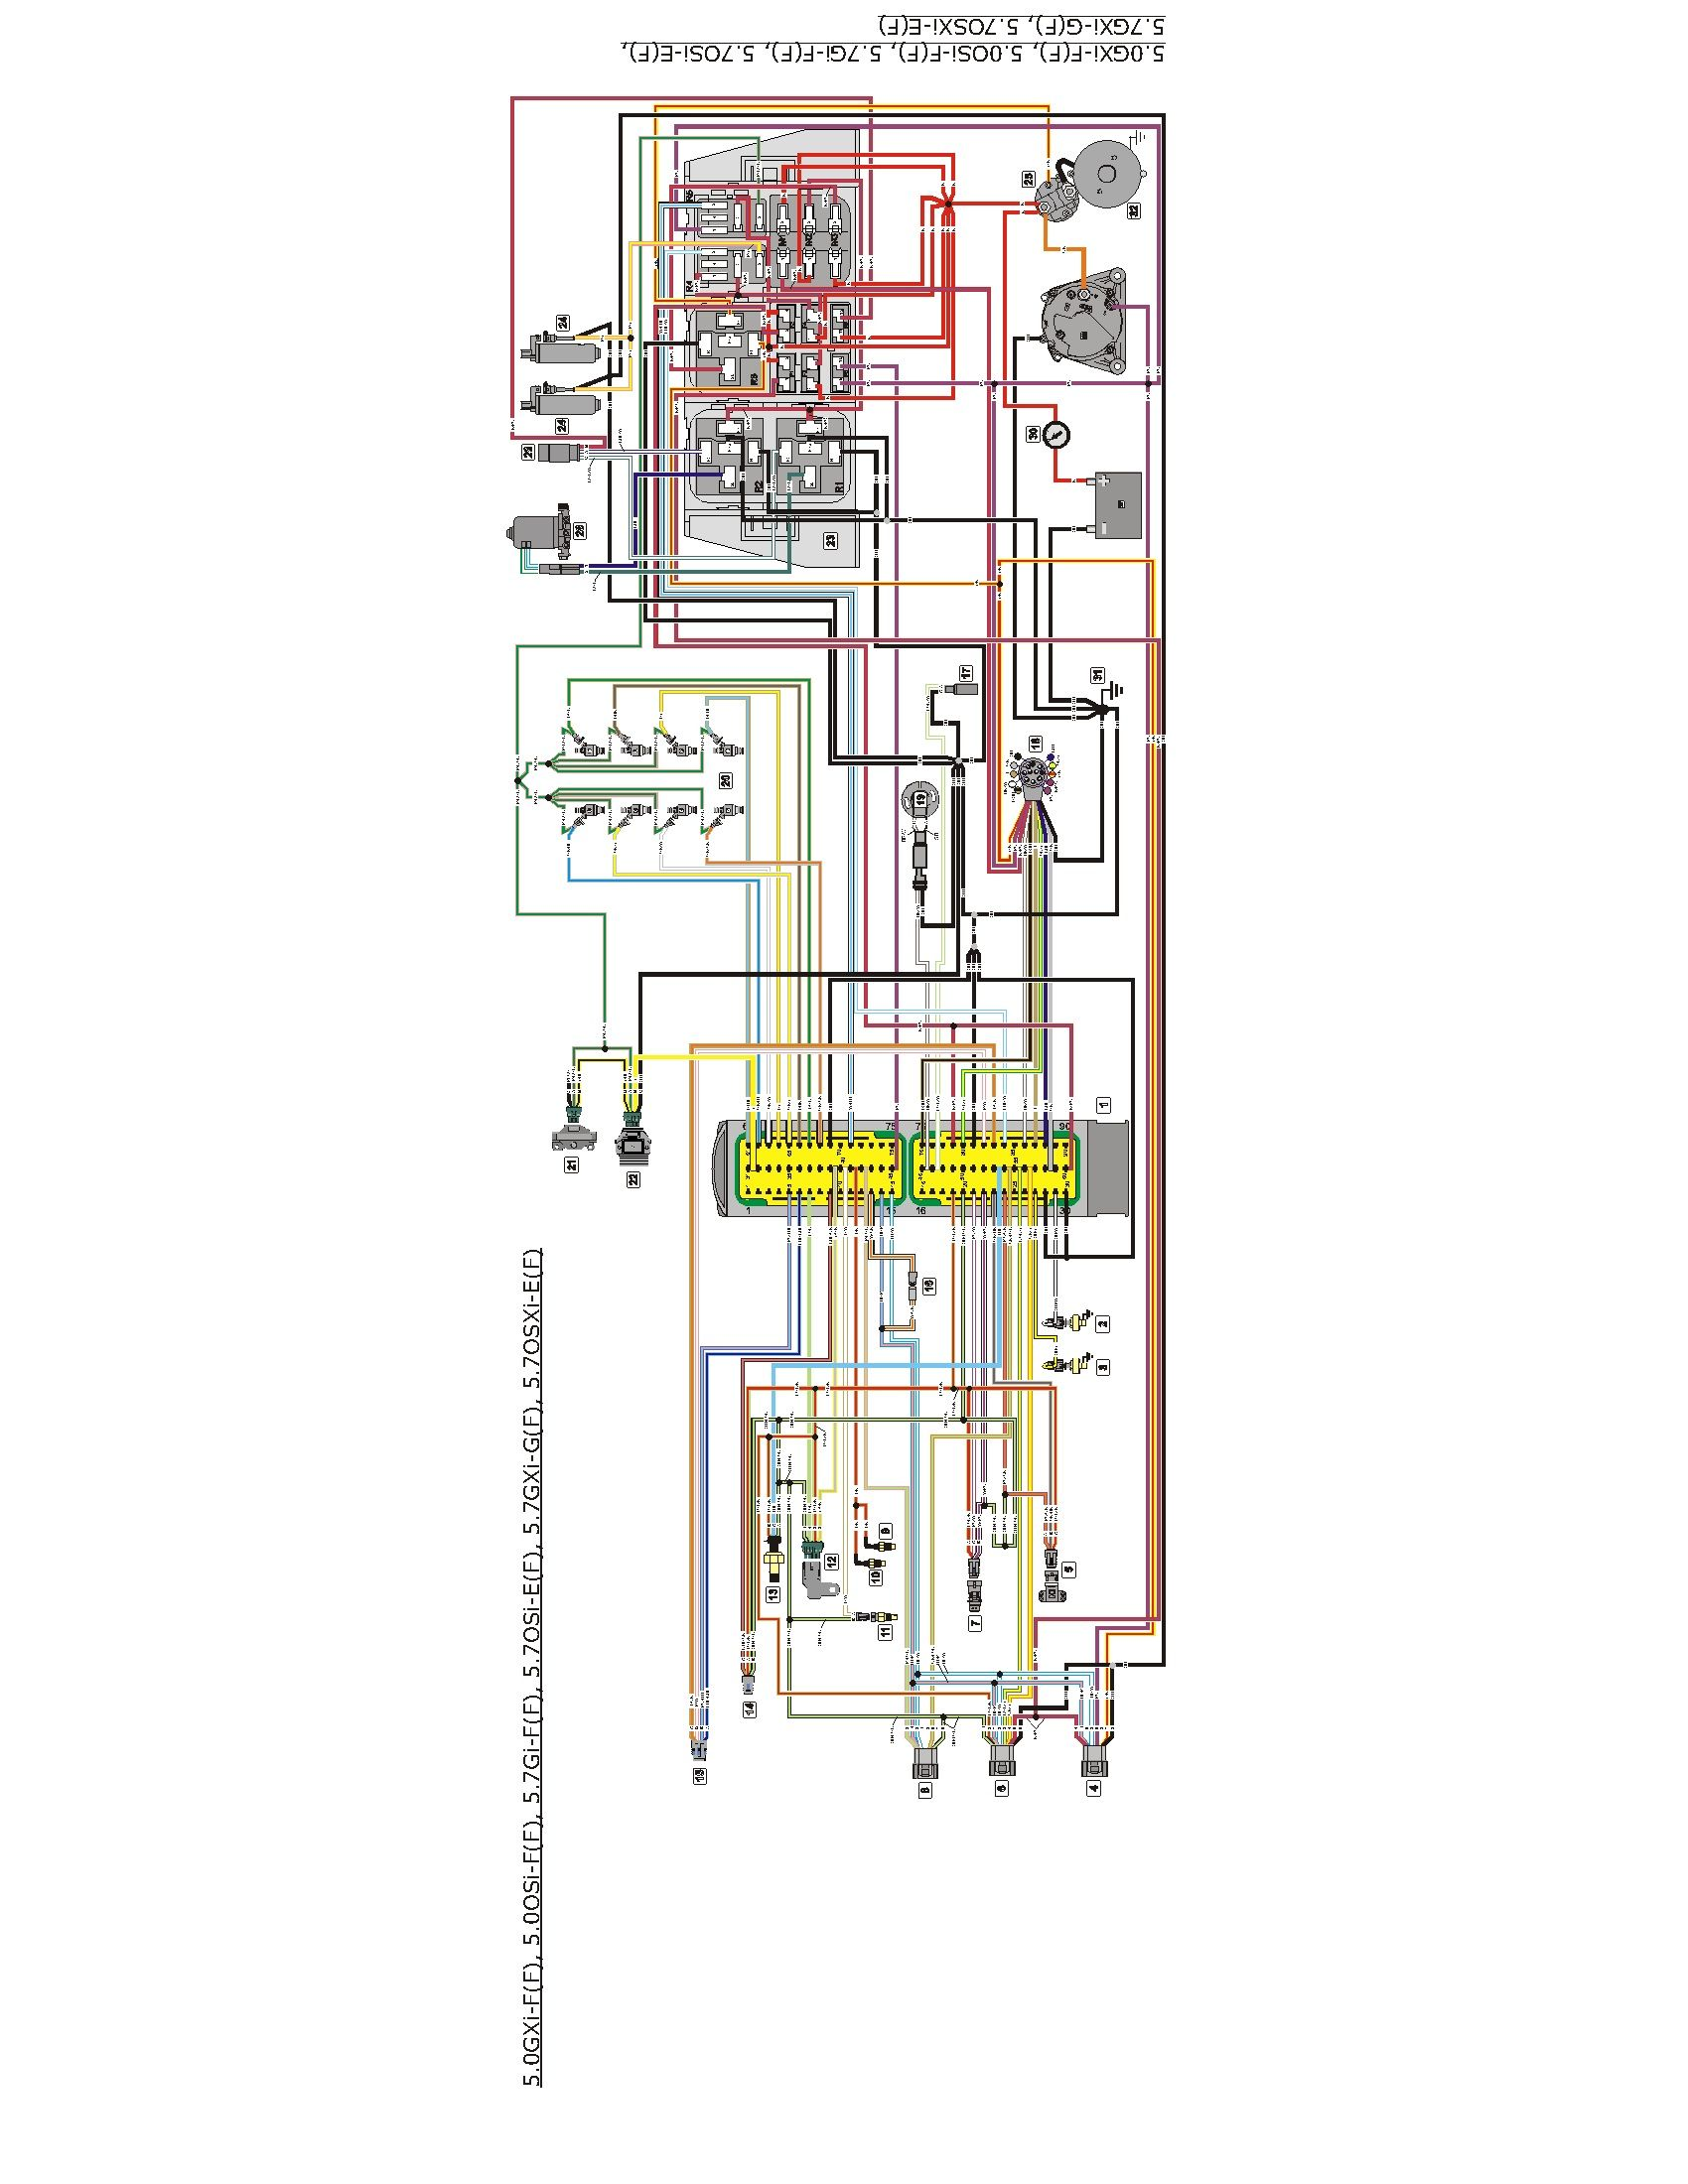 38e0106861e0fe47e508530985b32839 volvo penta 5 7 engine wiring diagram yate pinterest volvo Wire Harness Assembly at crackthecode.co